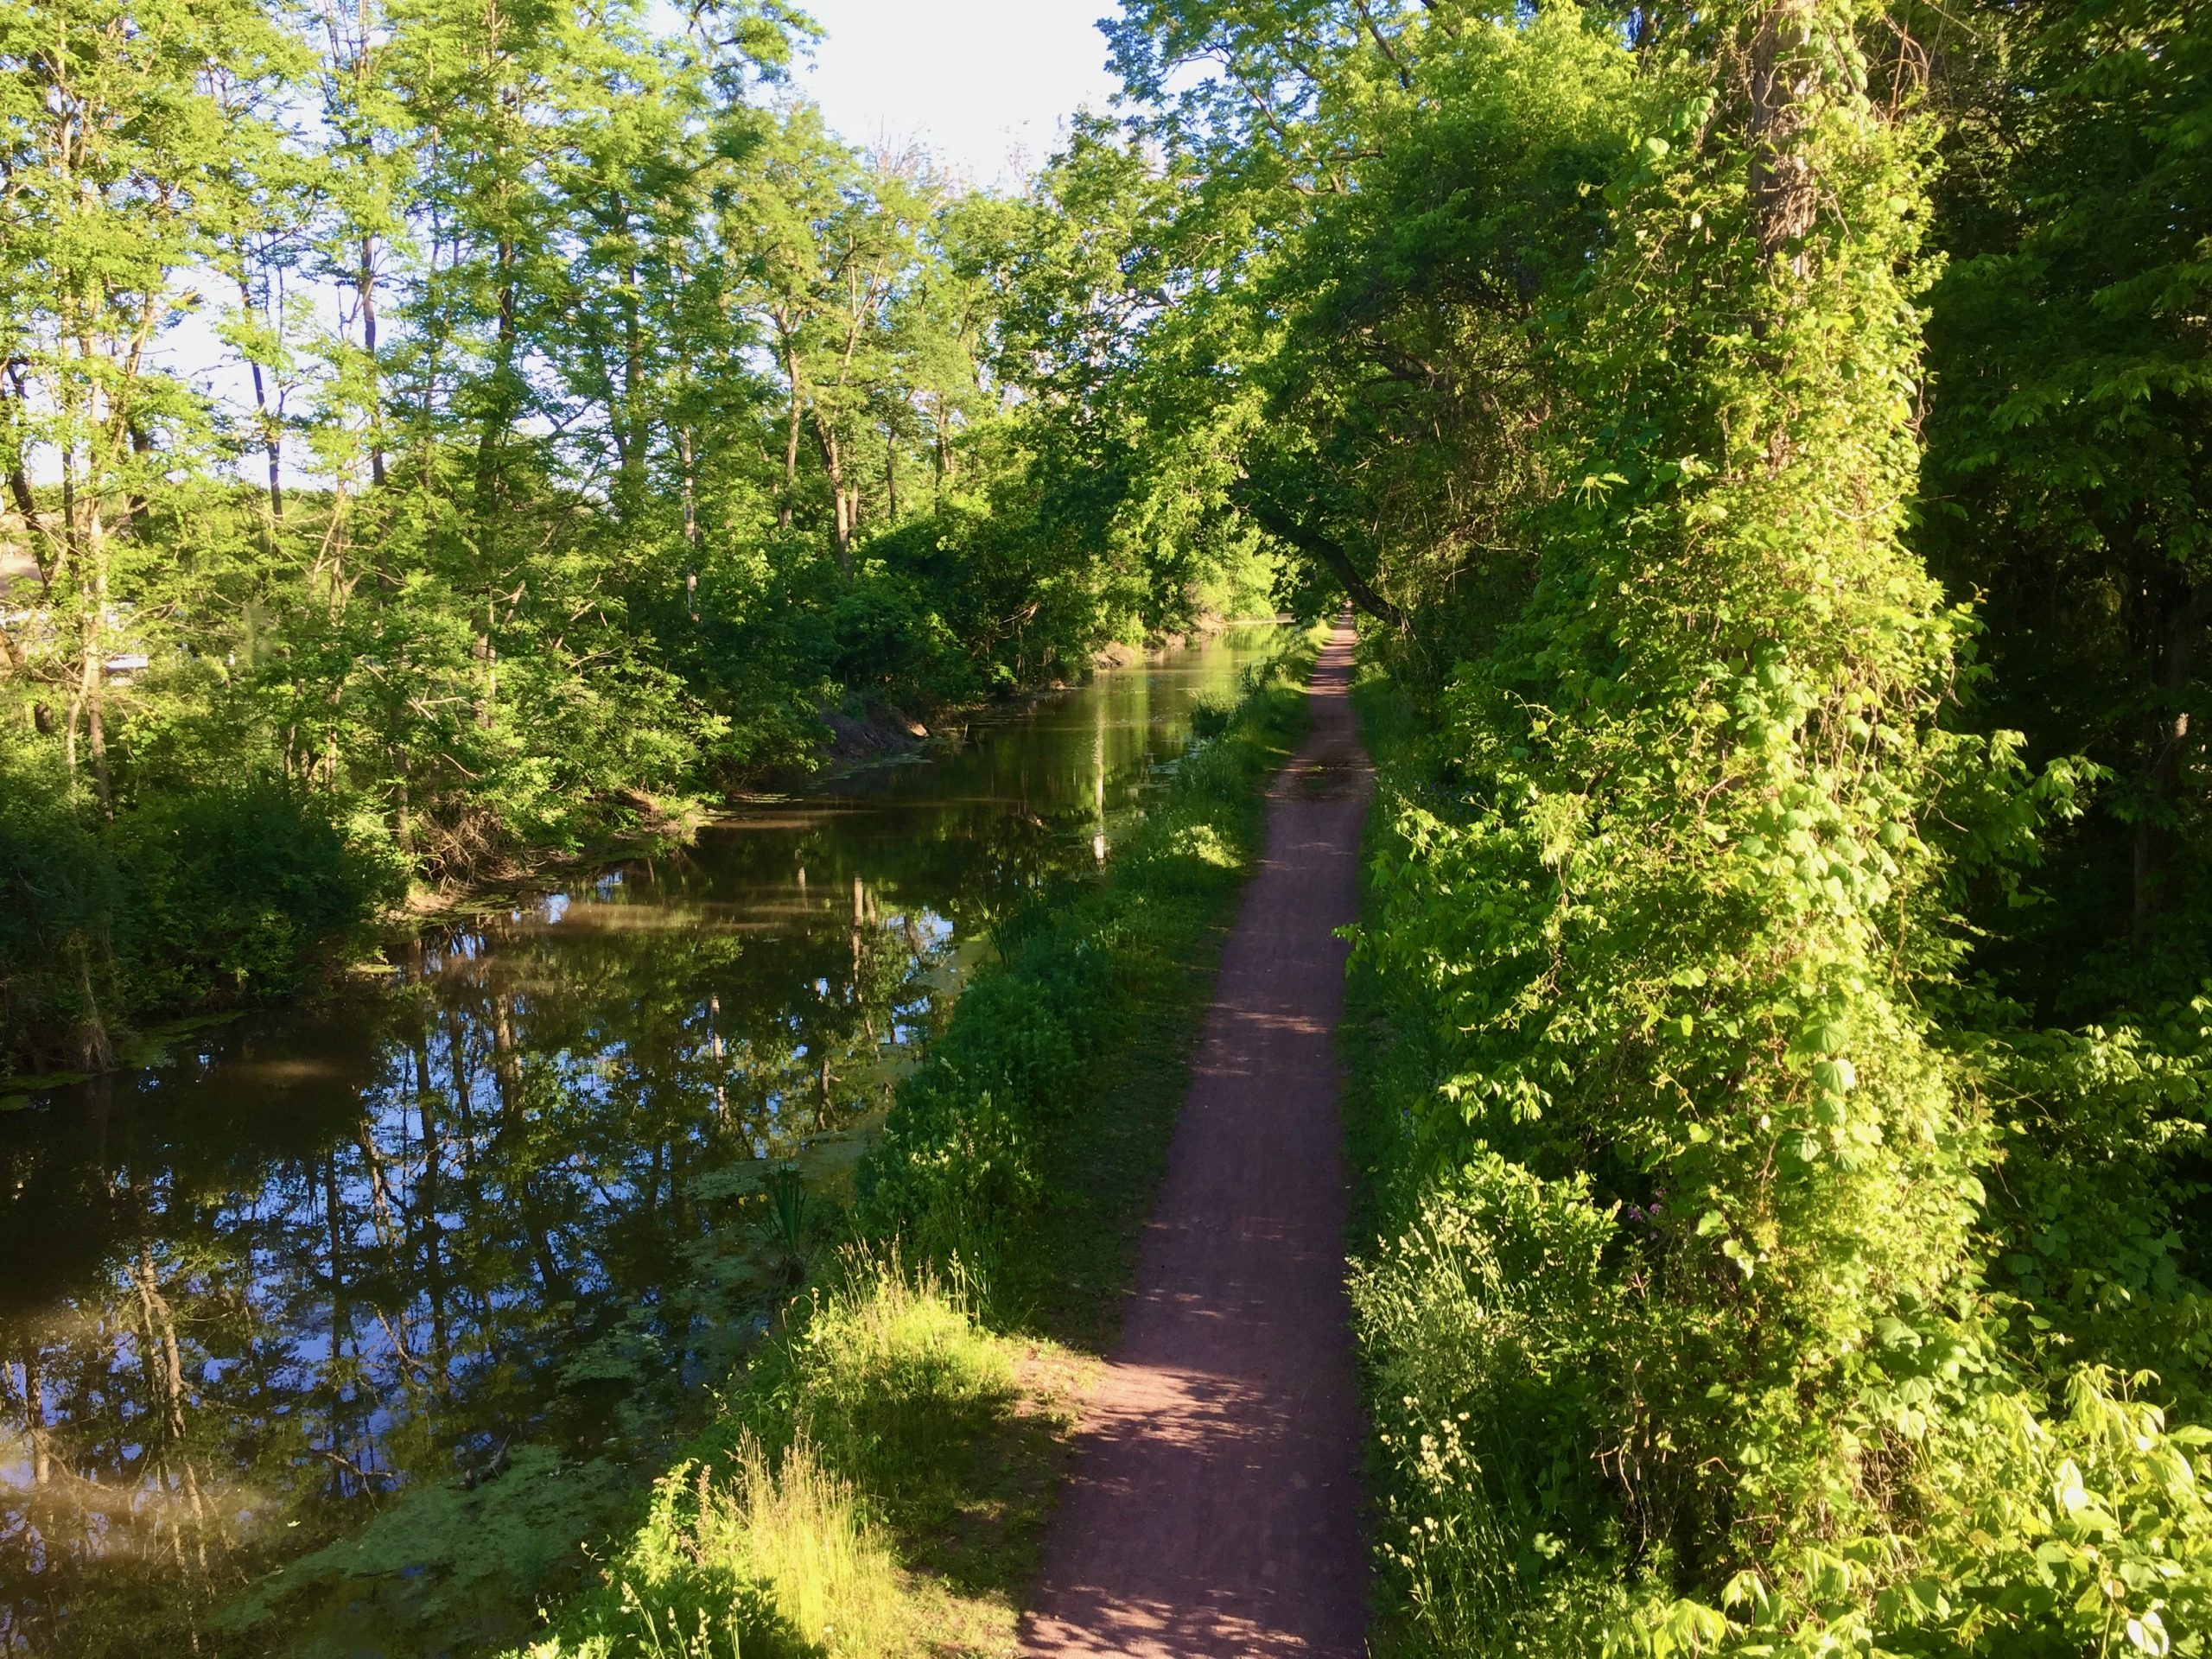 Just Beauty Today - Delaware River Canal and Towpath New Hope PA